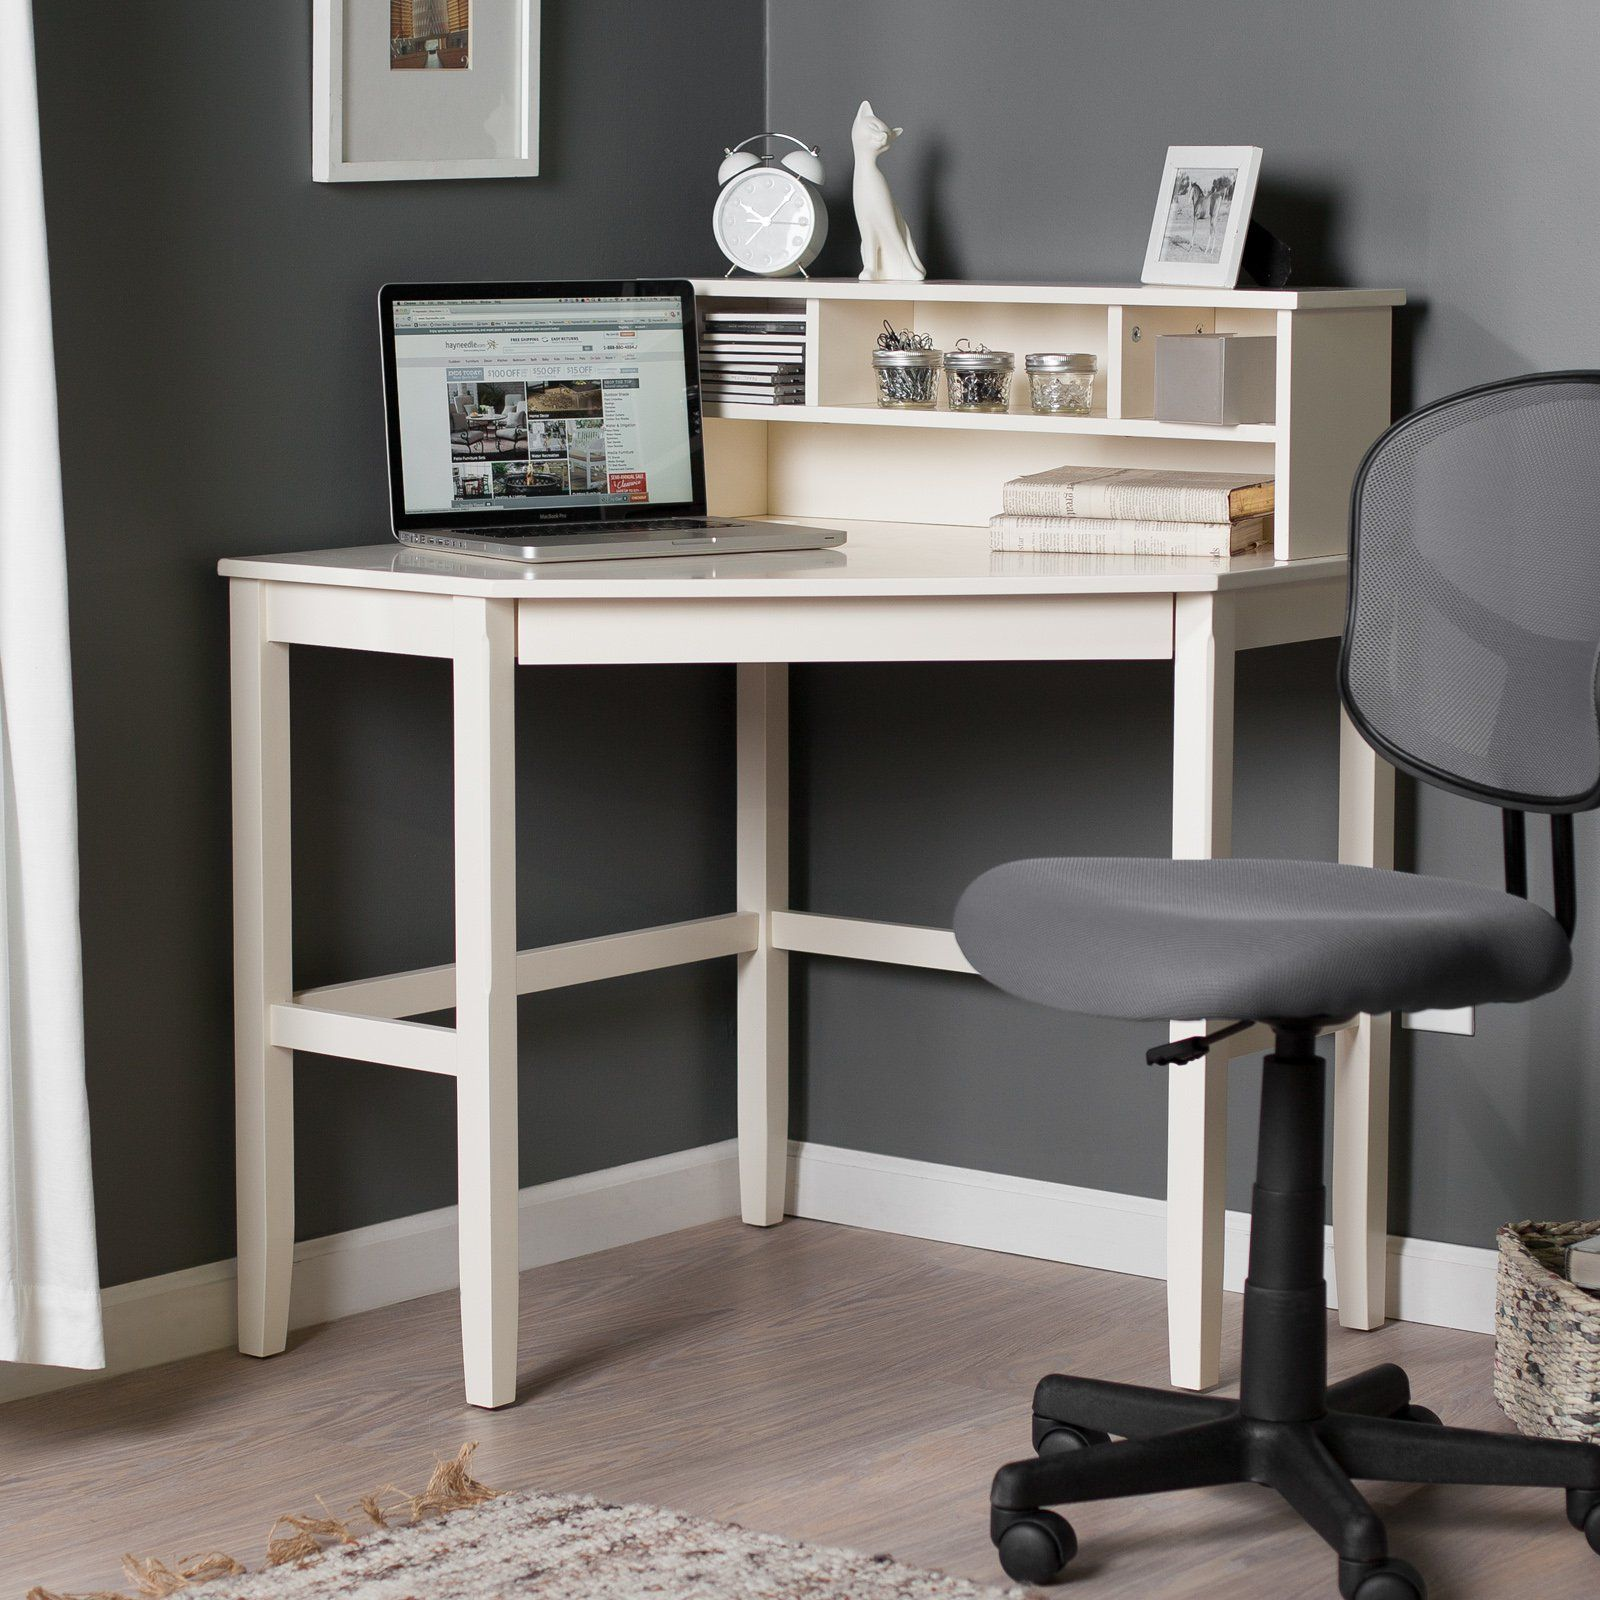 writing desk and hutch Products 1 - 36 of 8446  browse a large selection of desk and hutch designs for sale, including corner and l-shaped desks as well as writing and standing desk.